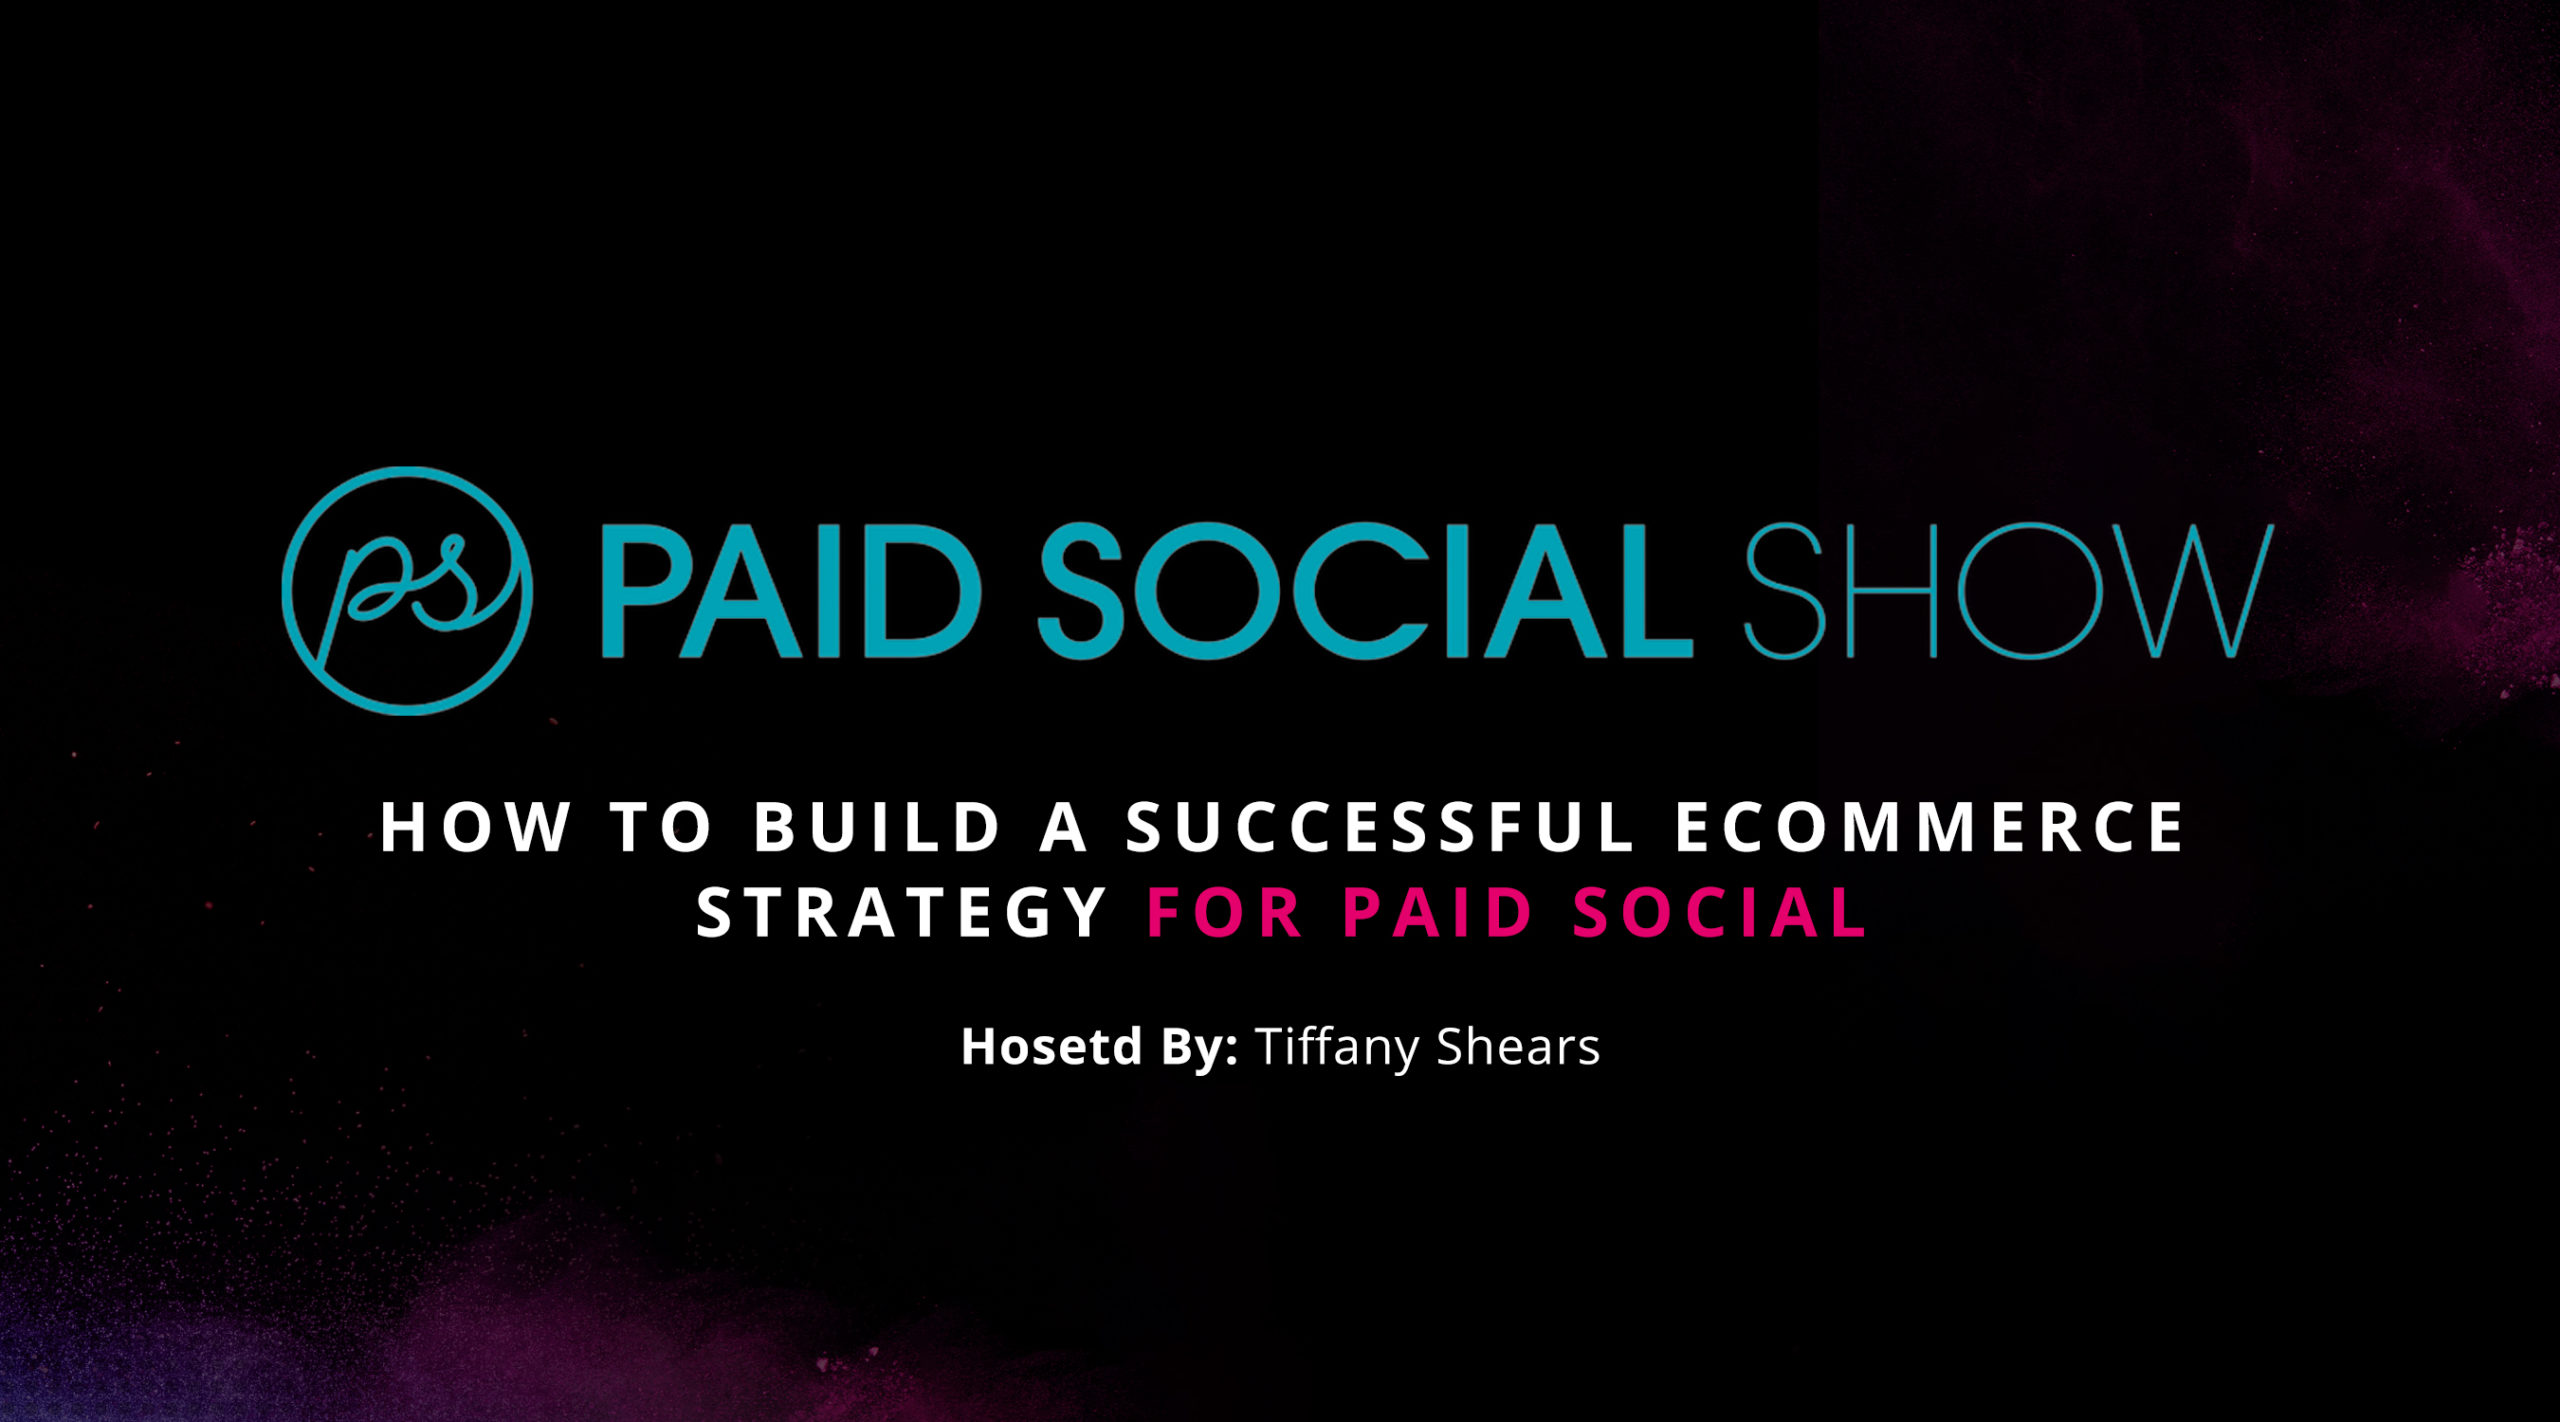 Paid Social Show: How To Build A Successful Ecommerce Strategy For Paid Social - Hosted By Tiffany Shears